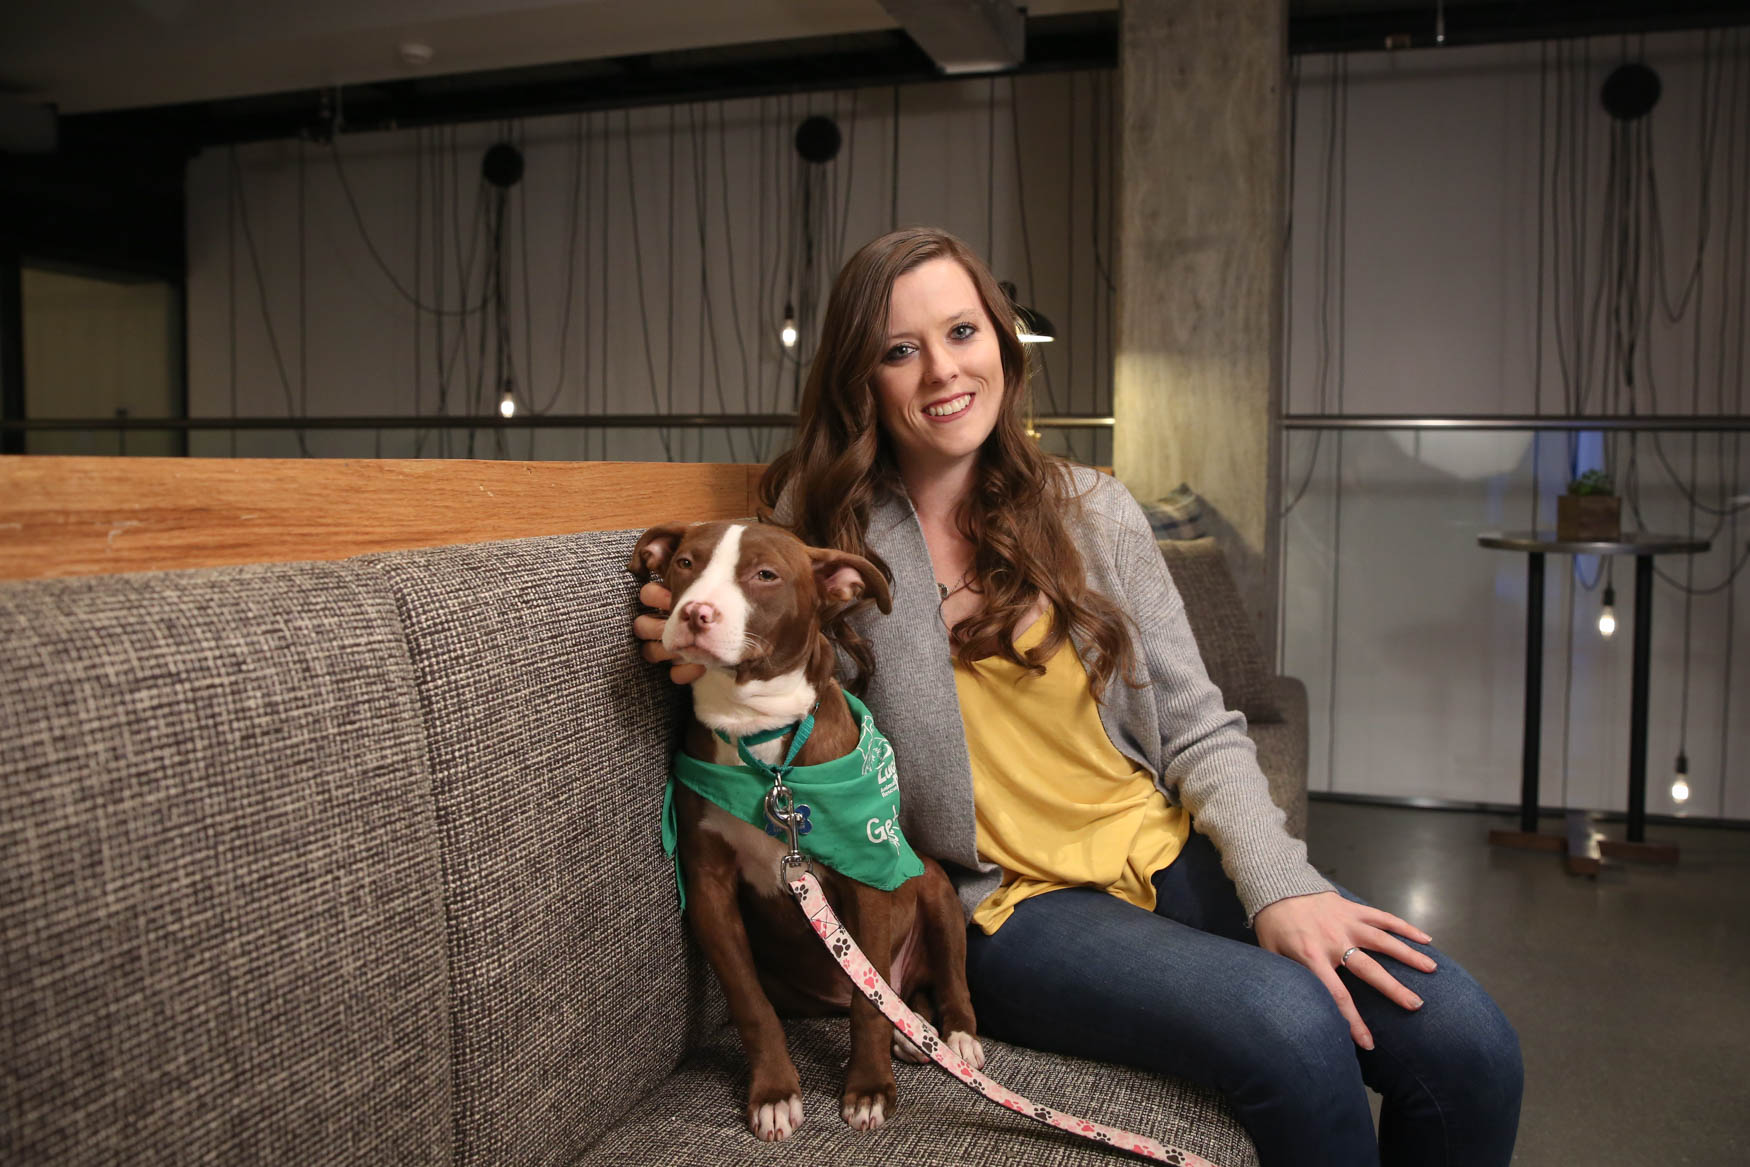 Meet Ula and Meghan, a 5-month-old Terrier mix and a 29-year-old human respectively. Photo location: Moxy Washington, D.C. Downtown (Image: Amanda Andrade-Rhoades/ DC Refined)